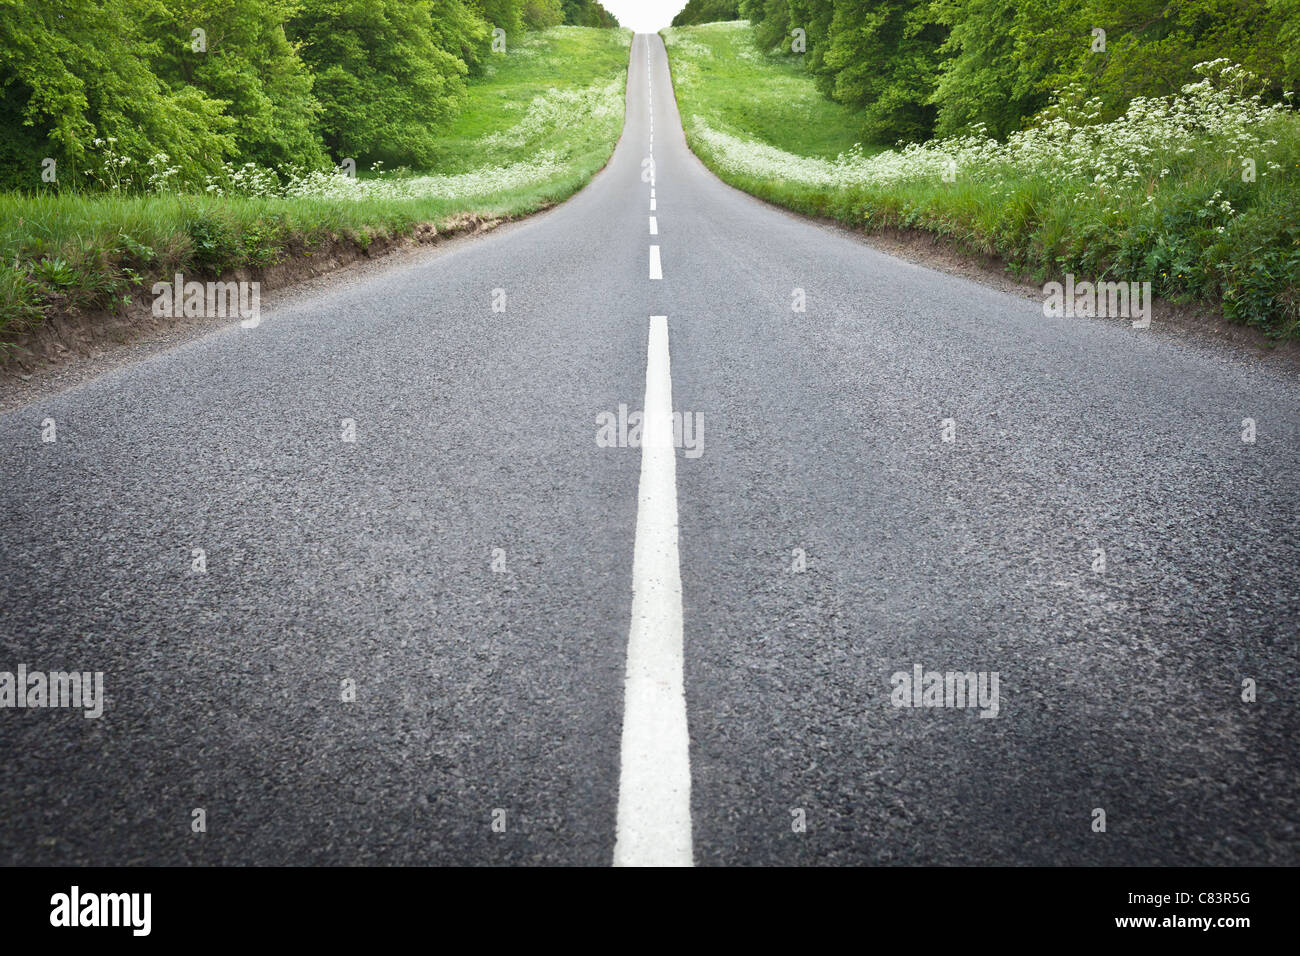 Stripes on paved rural road - Stock Image